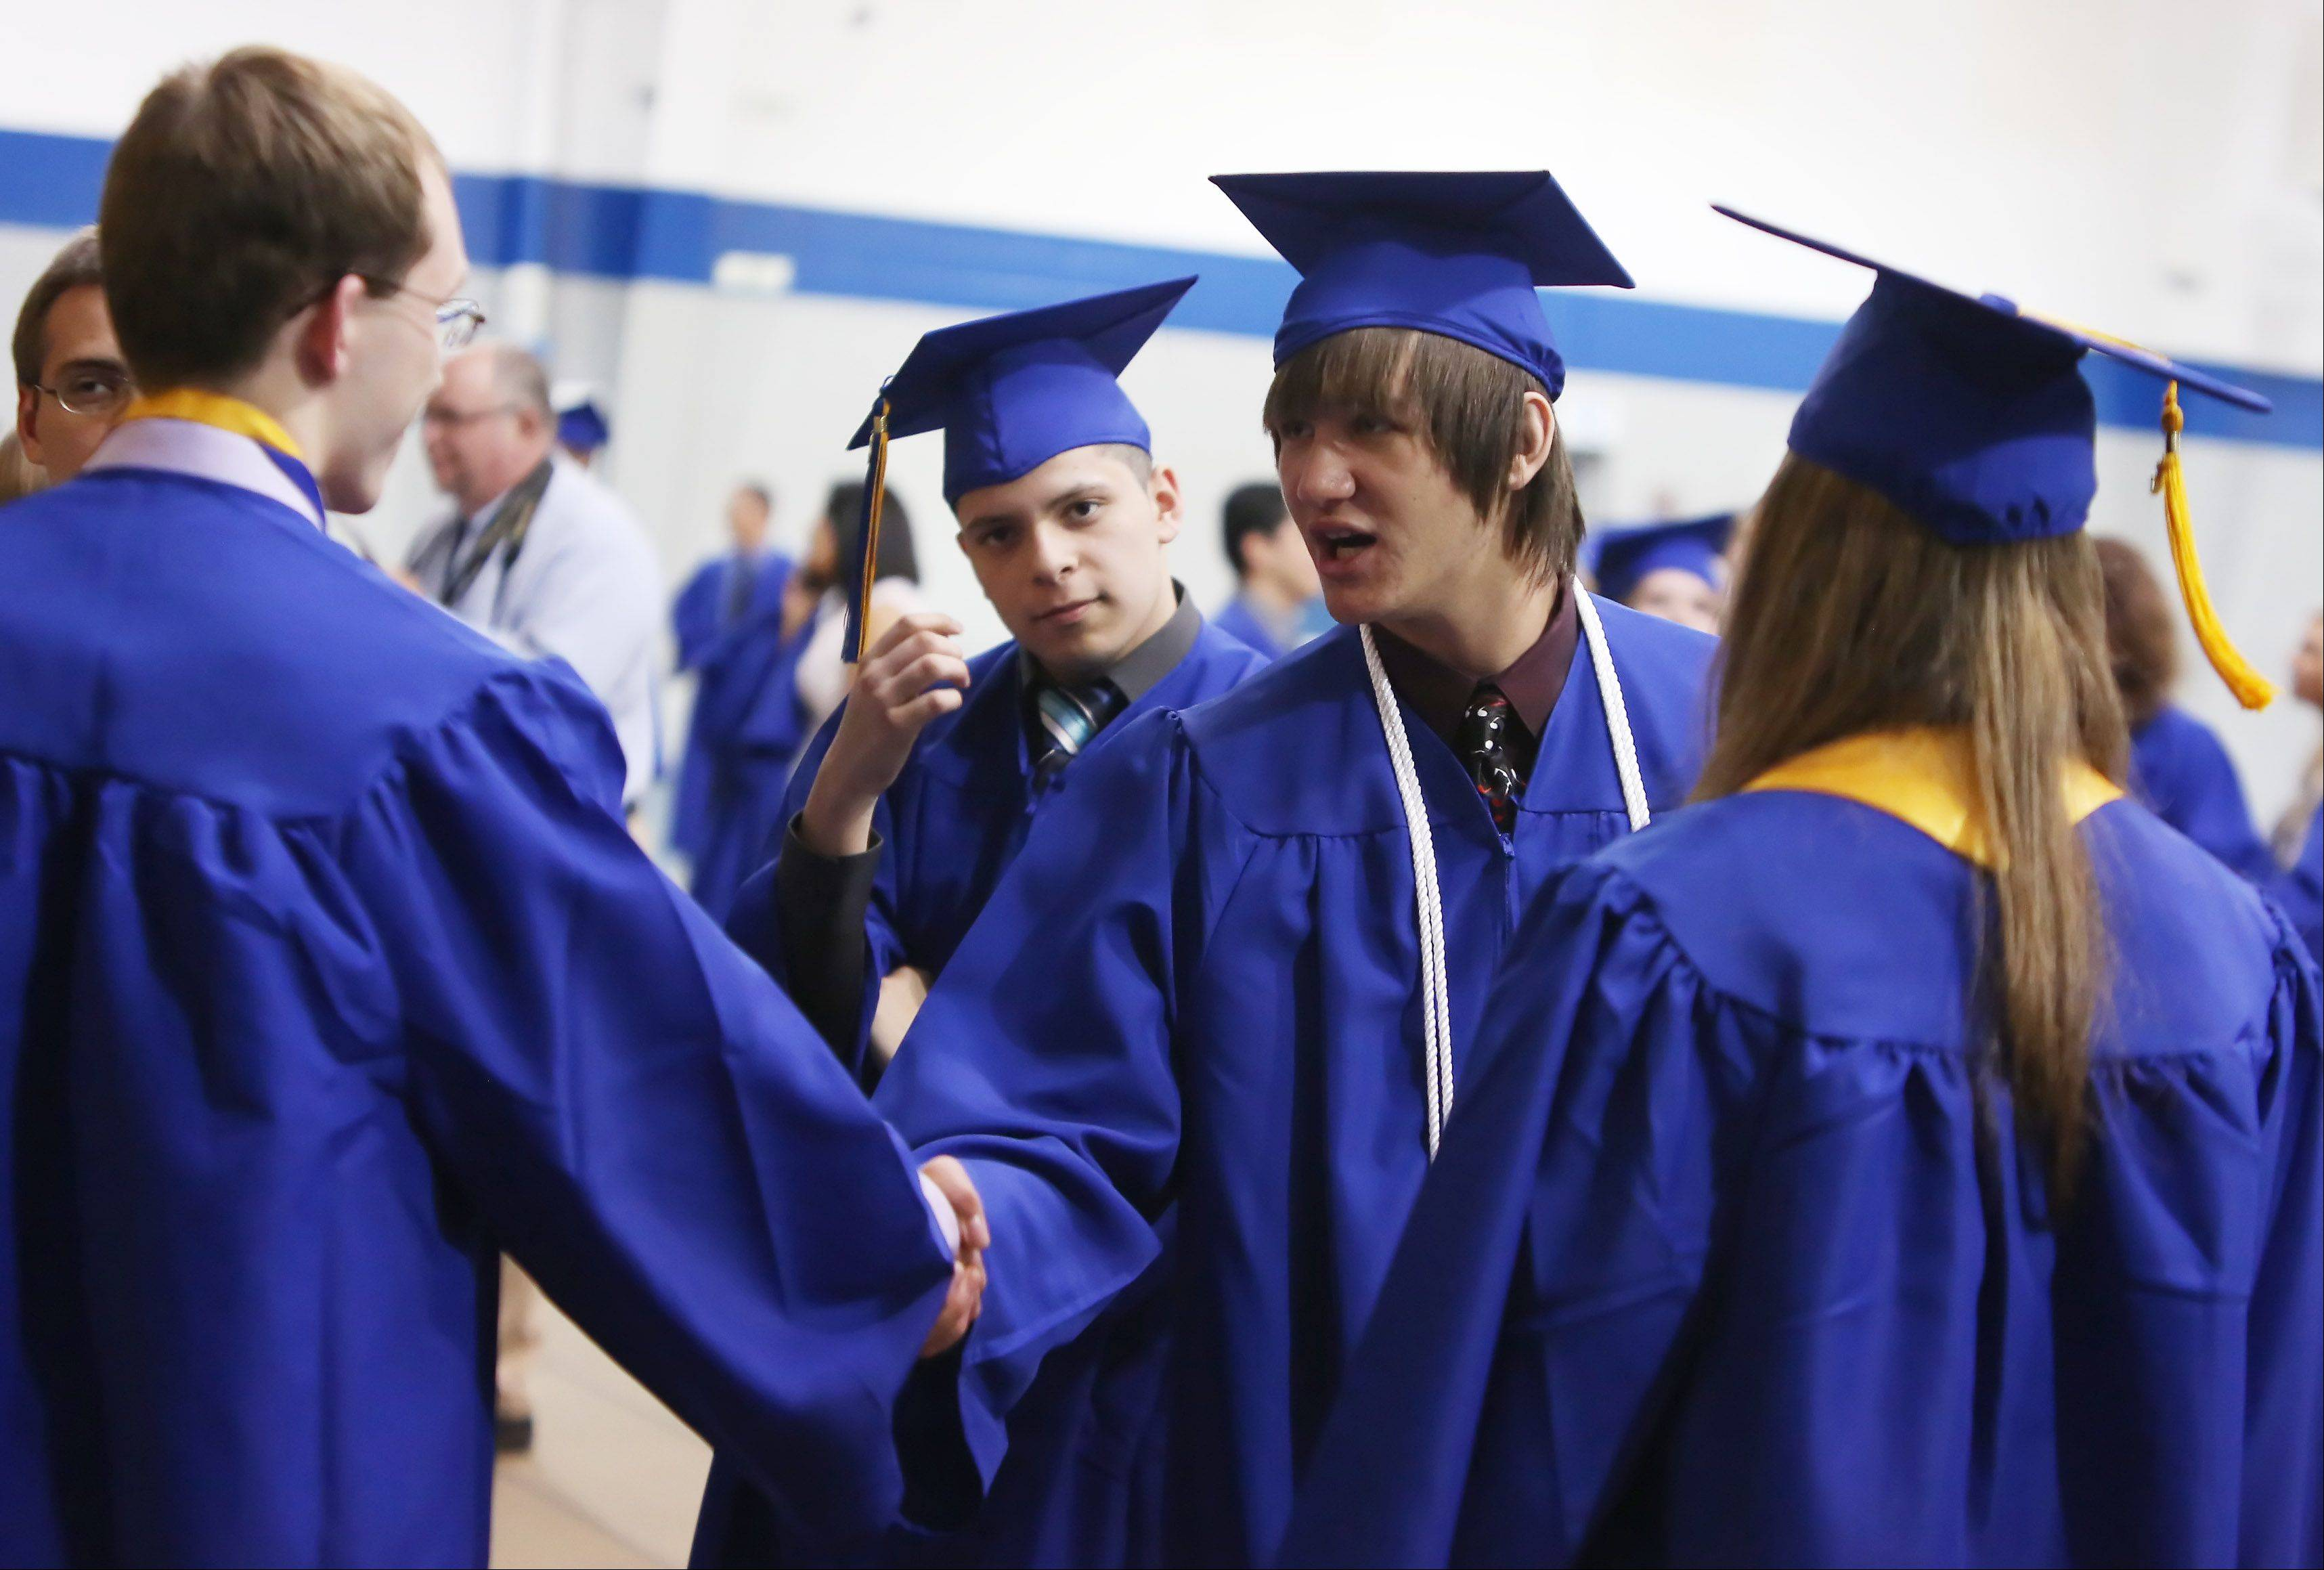 Images from the Wheeling High School graduation on Sunday, June 2, at the school.